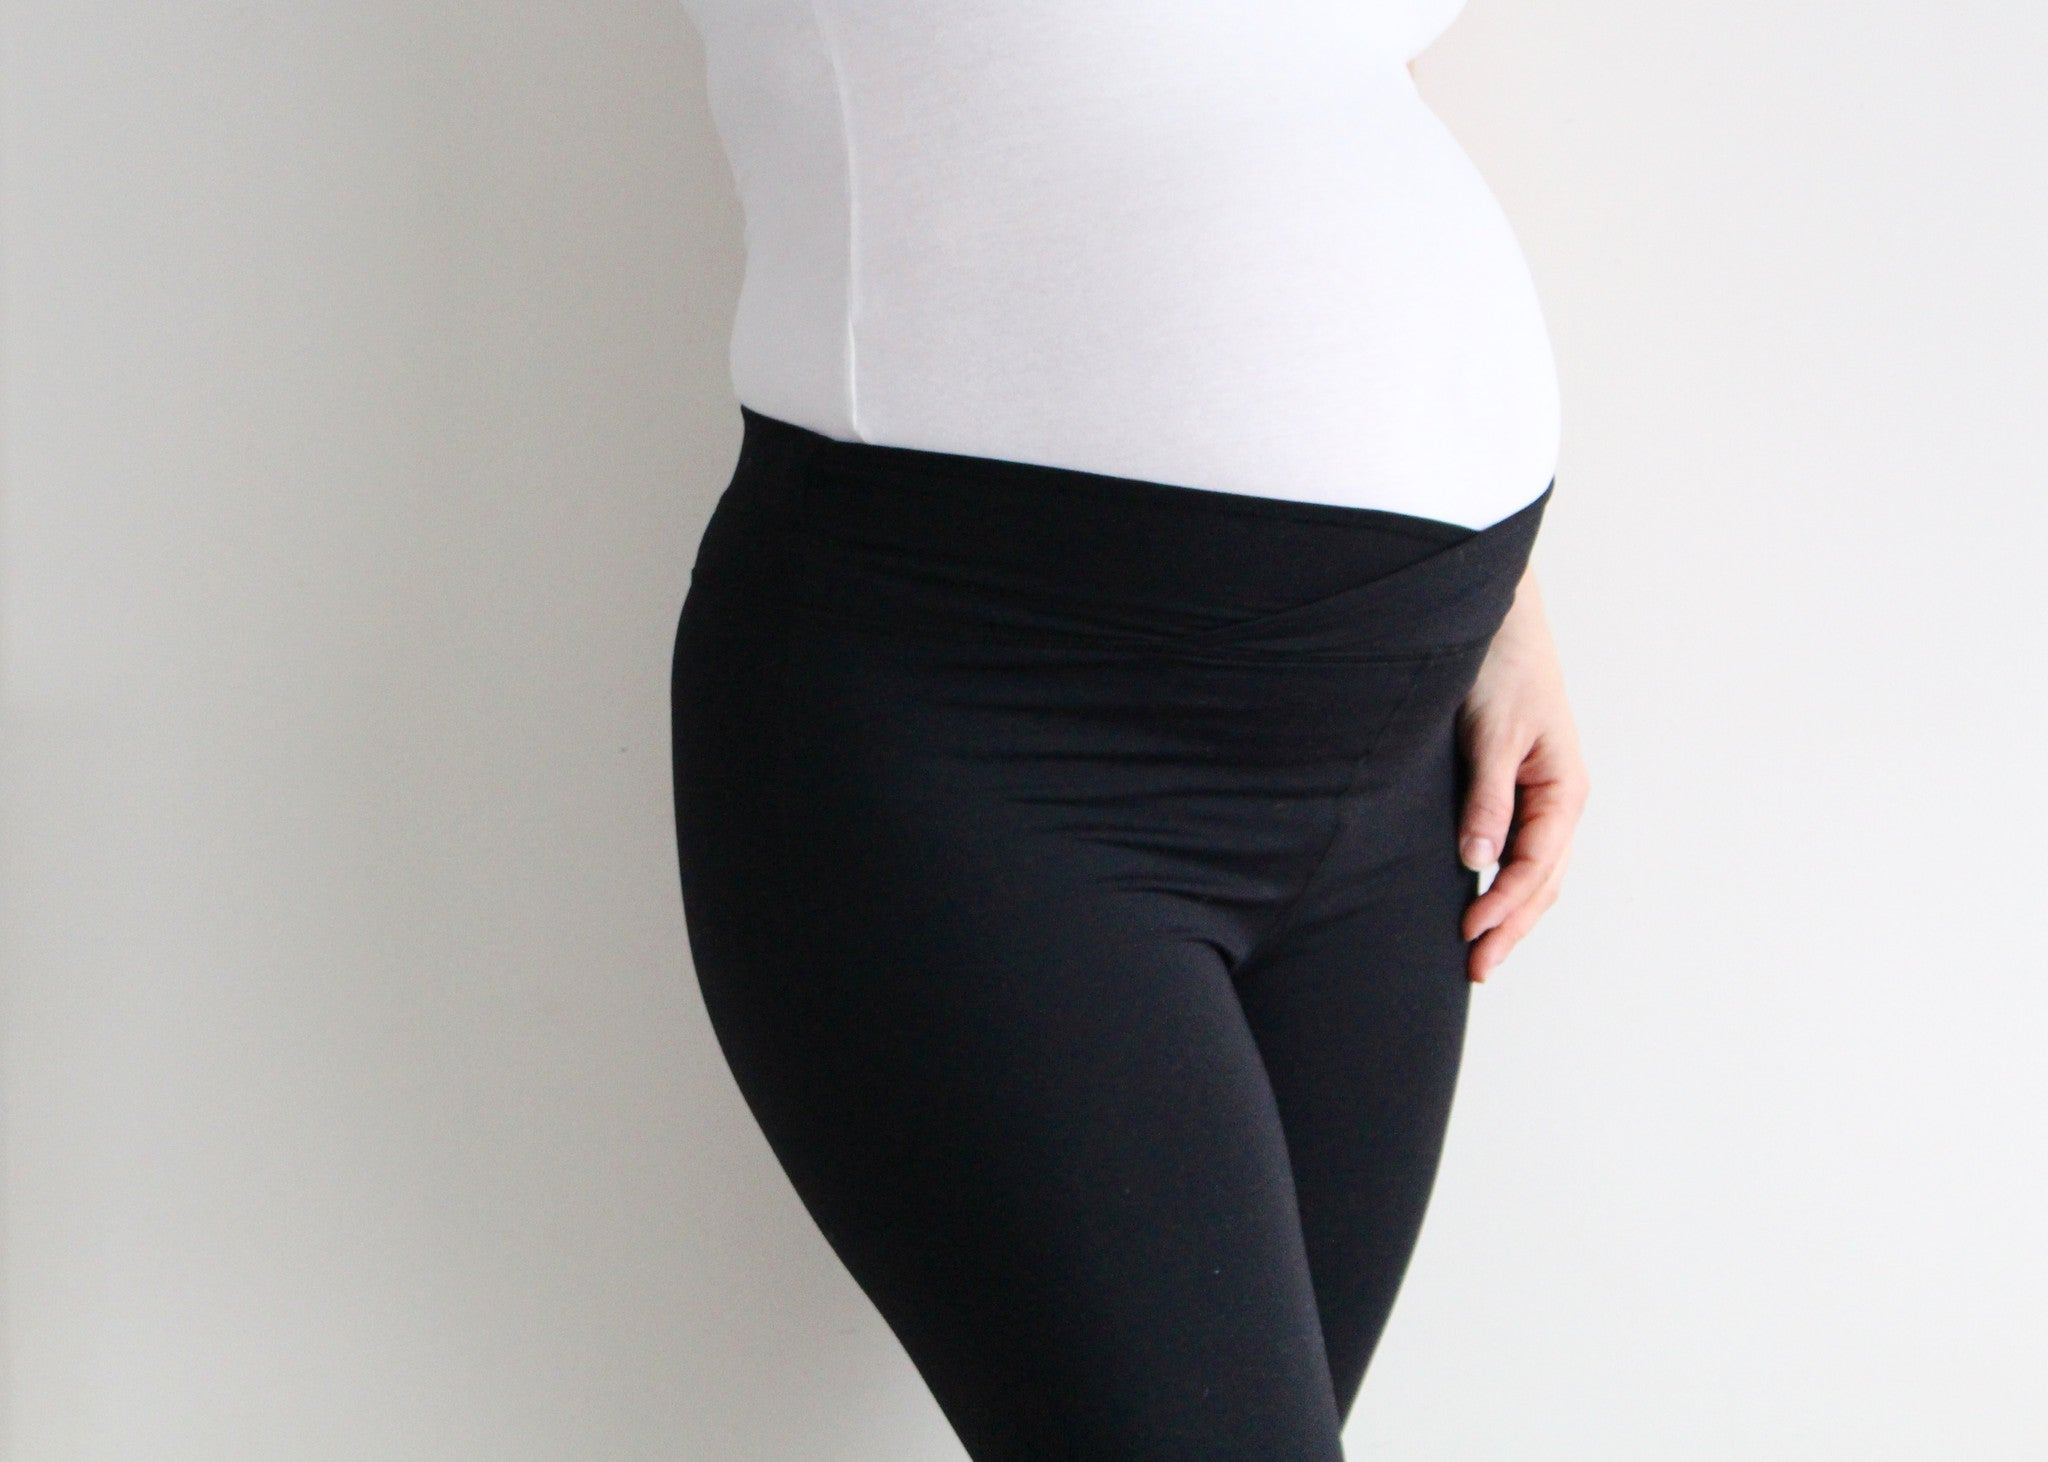 high waisted activewear legging postpartum pregnancy over the belly pregnant flatly style fashion fitness maternity style baby bump